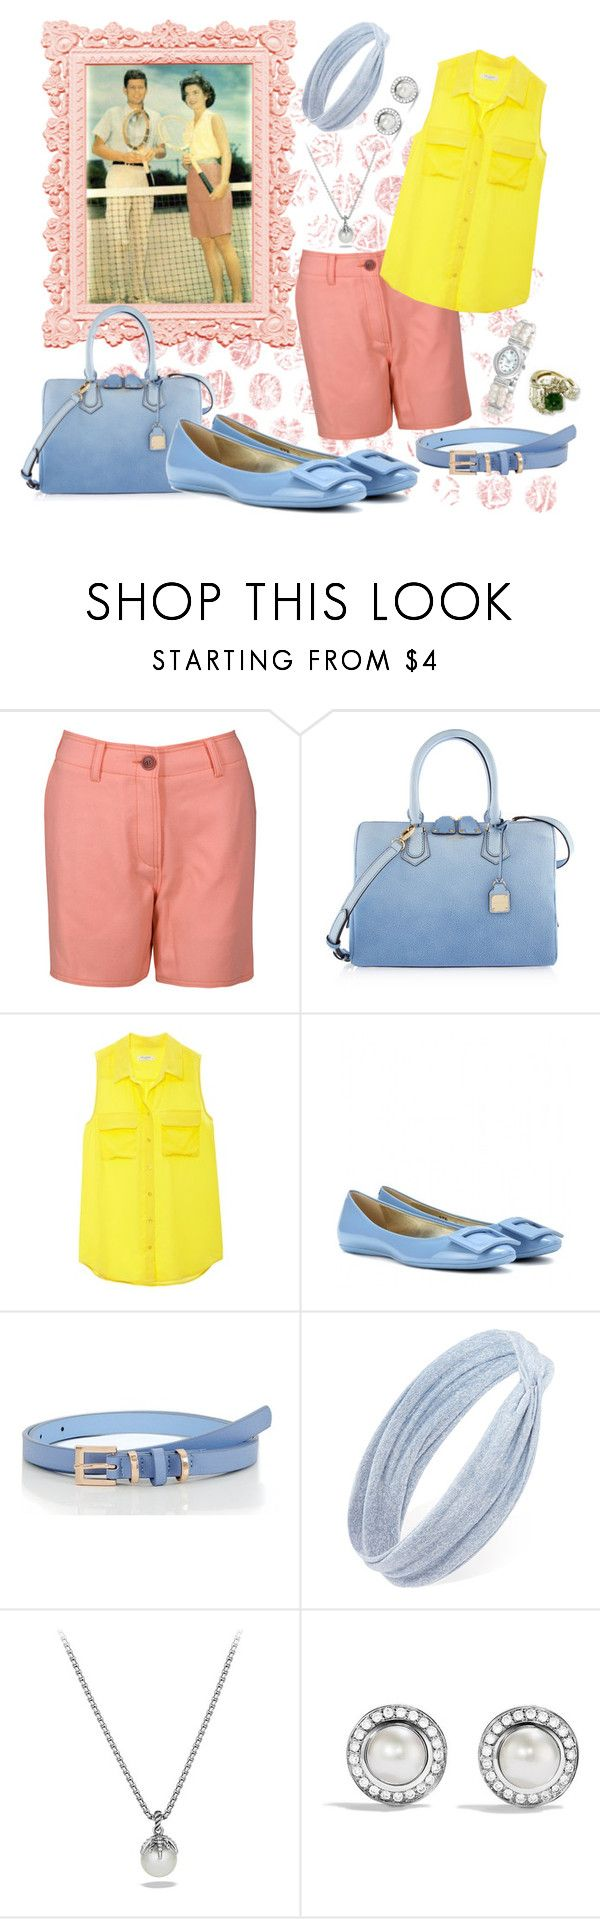 """""""Jackie O inspired"""" by leanne-mcclean ❤ liked on Polyvore featuring Missoni, Henri Bendel, Equipment, Roger Vivier, Forever 21, David Yurman and Bling Jewelry"""